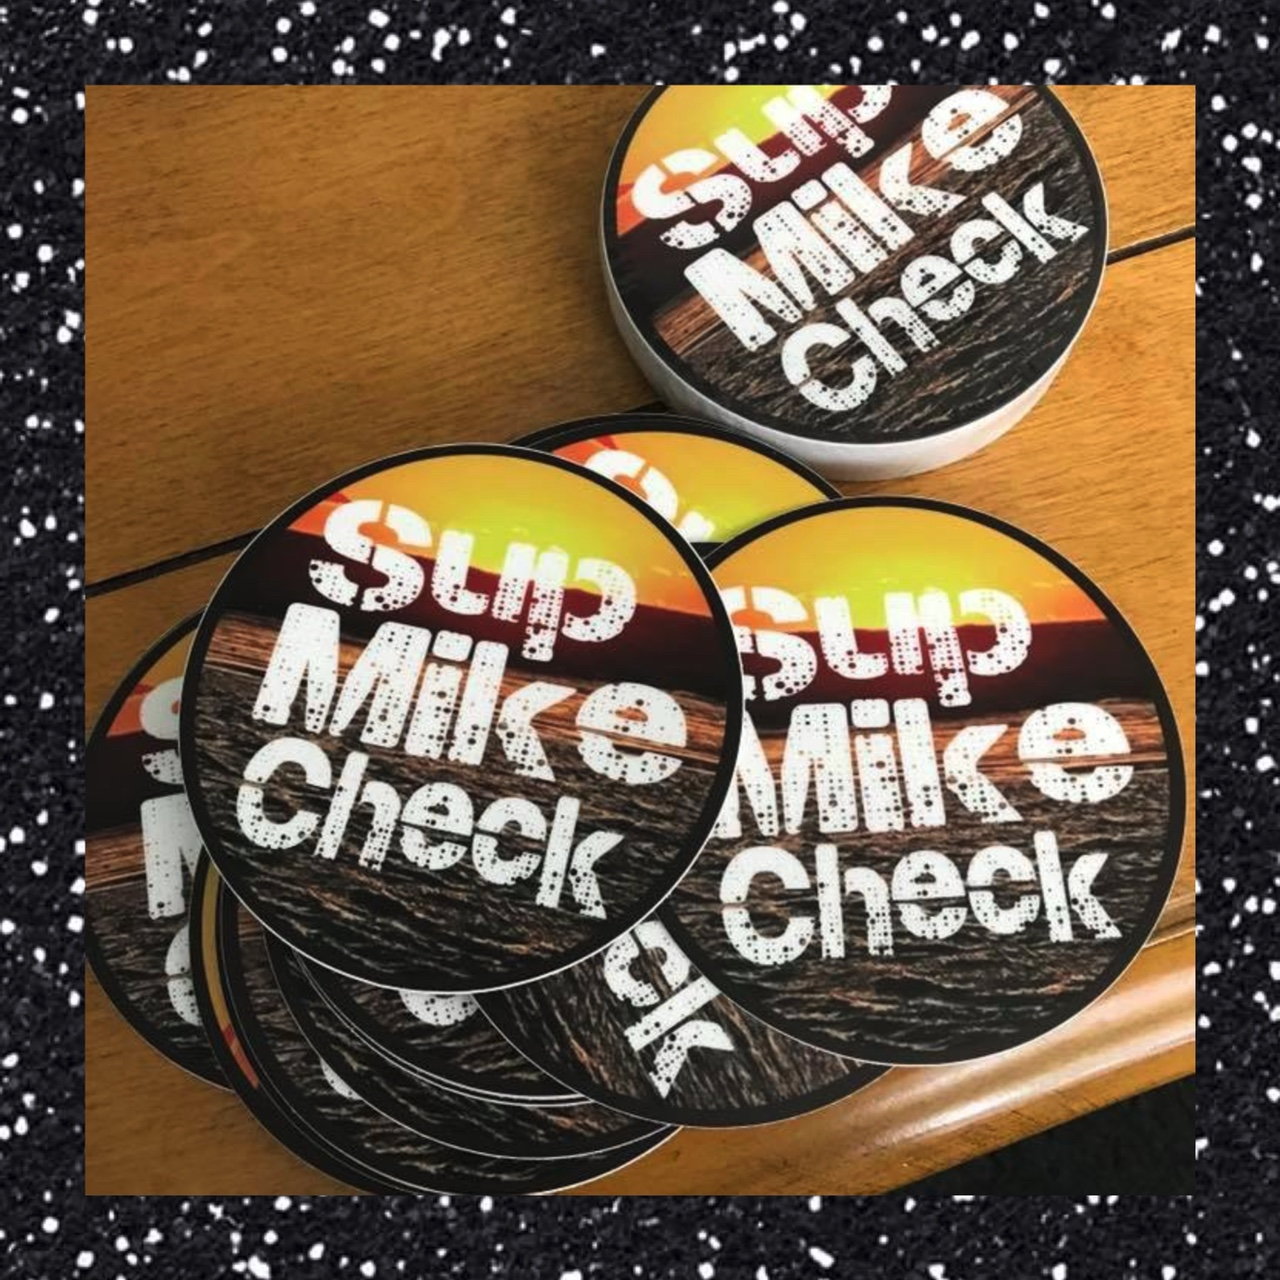 Product Image 1 - SUPMIKECHECK MERCH: Supmikecheck stickers! 5 for